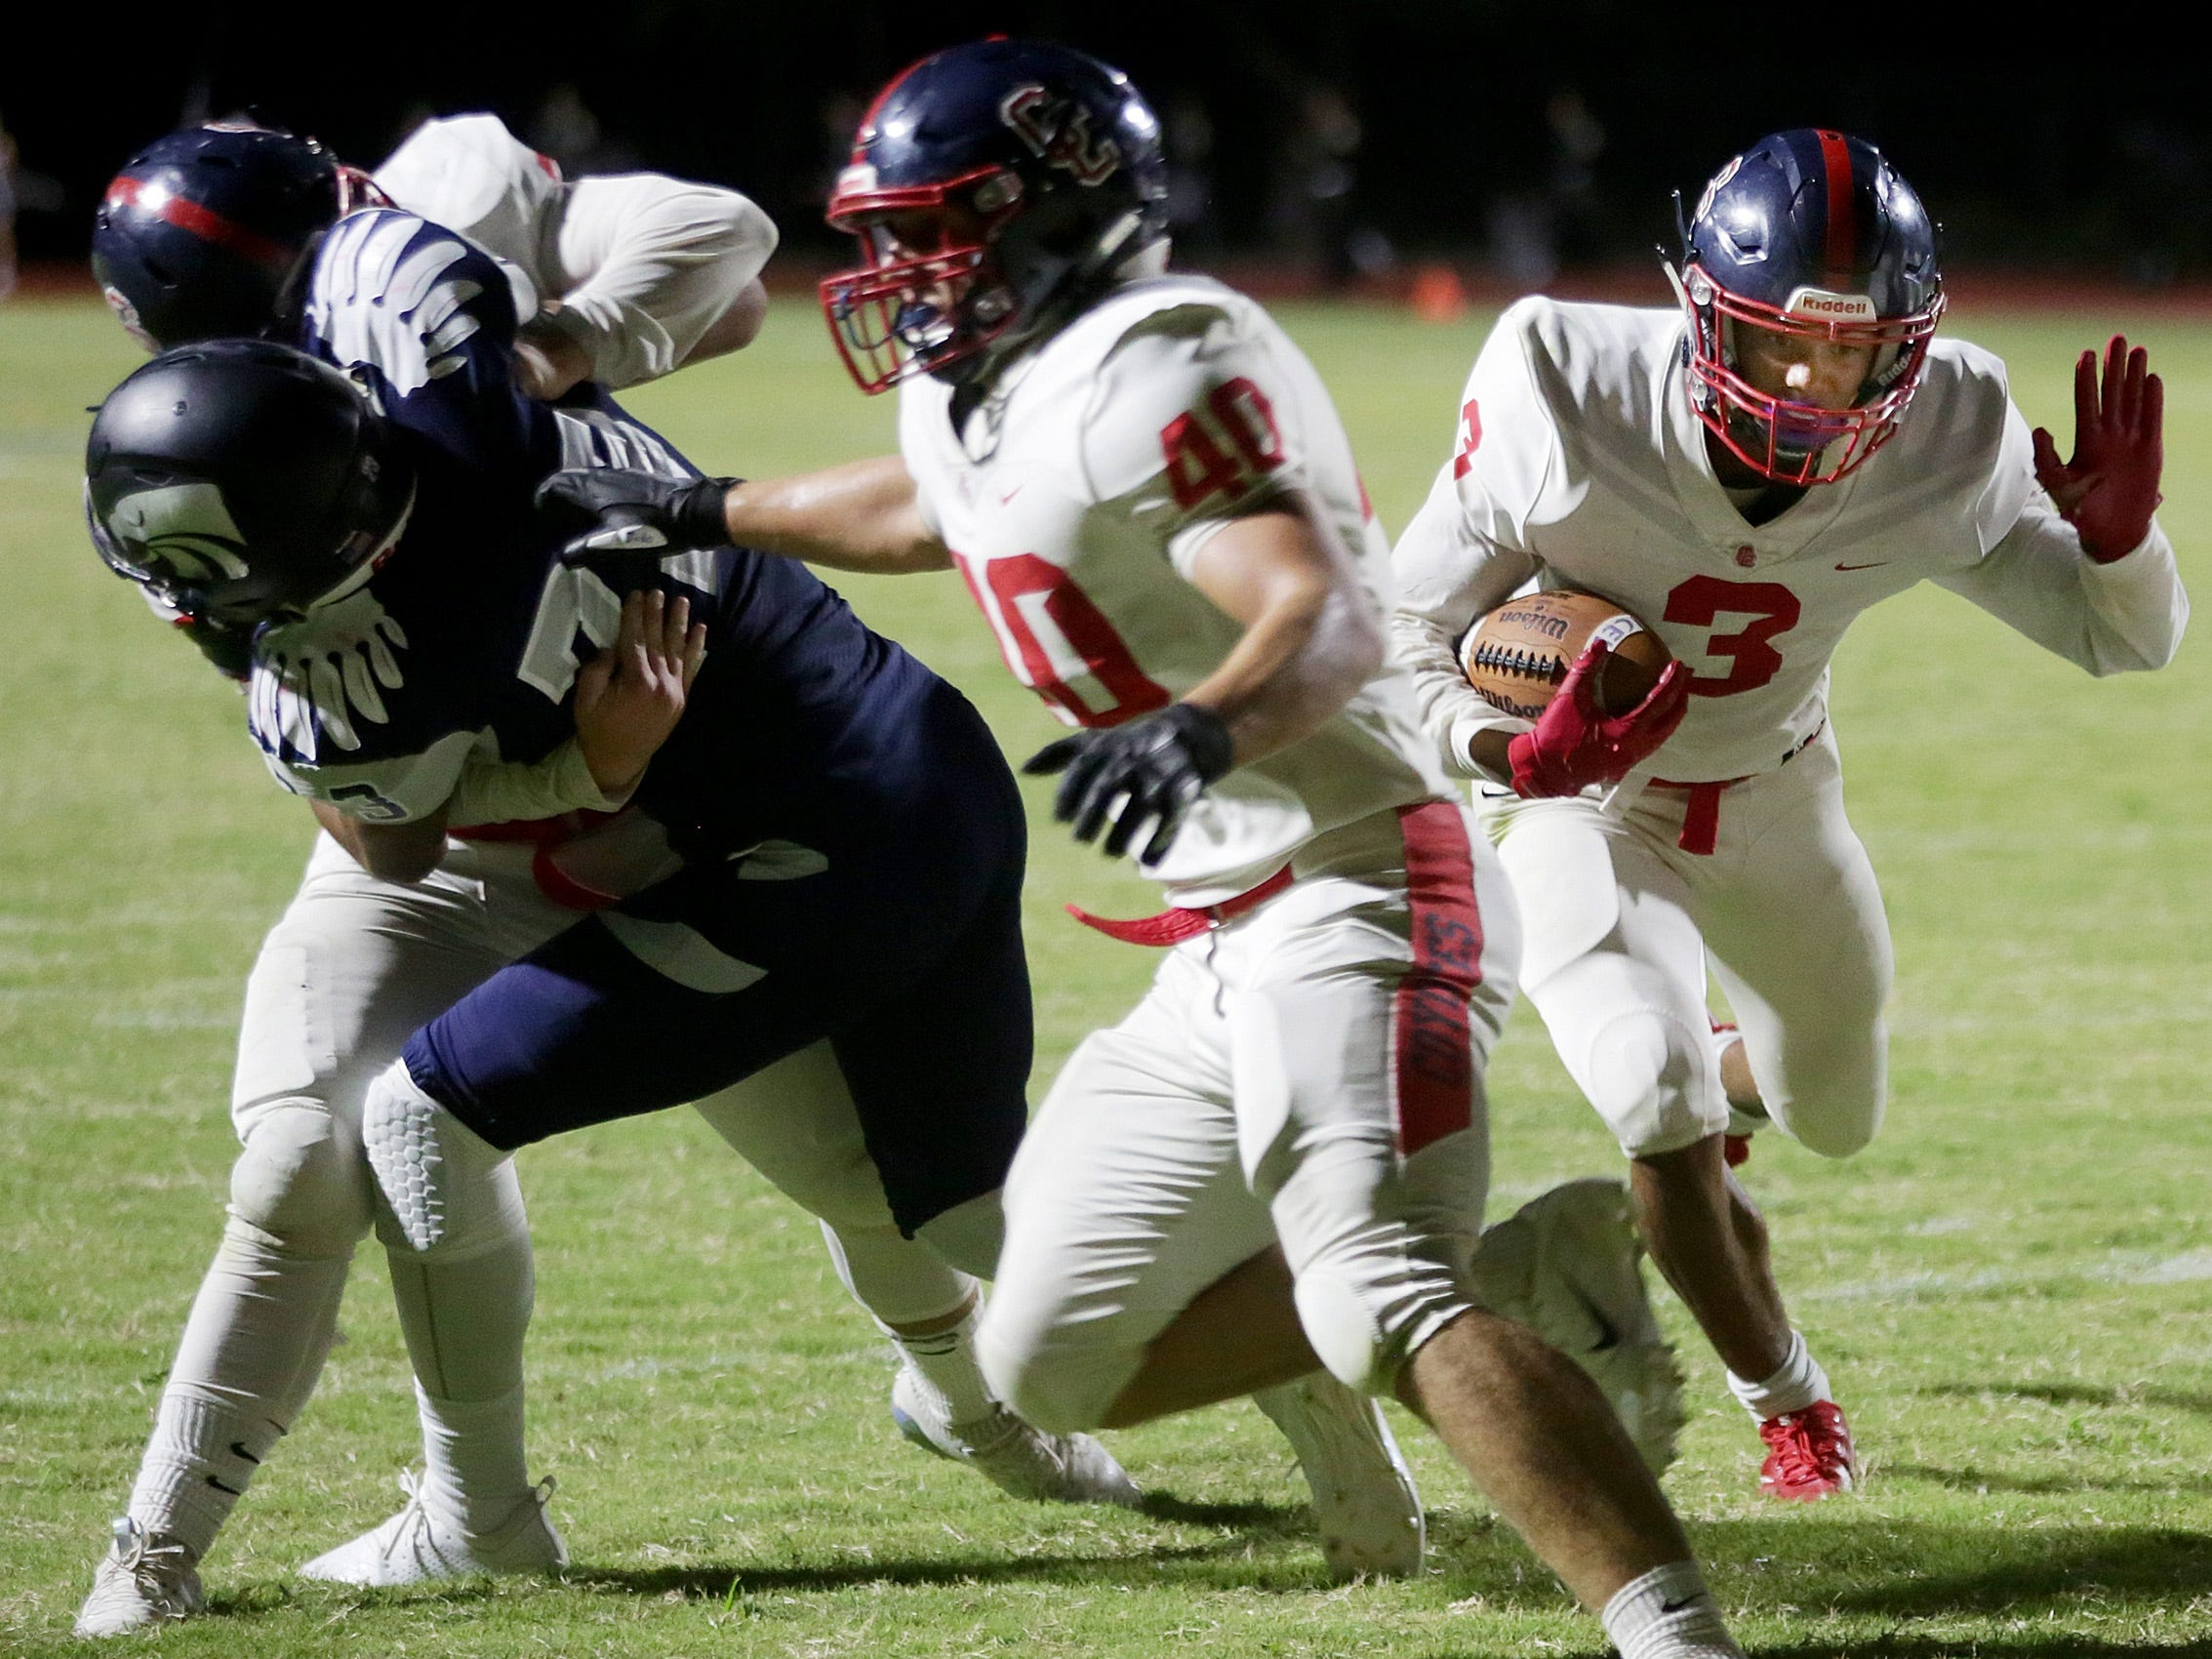 The offensive line punches open a huge hole for Peoria Centennial's Jaydin Young (3) to score during the second quarter of the Ironwood Ridge vs. Peoria Centennial high school football game at Ironwood Ridge High School, 2475 W. Naranja Drive, on Sept. 14, 2018, in Oro Valley, Ariz. Centennial won 55-7.